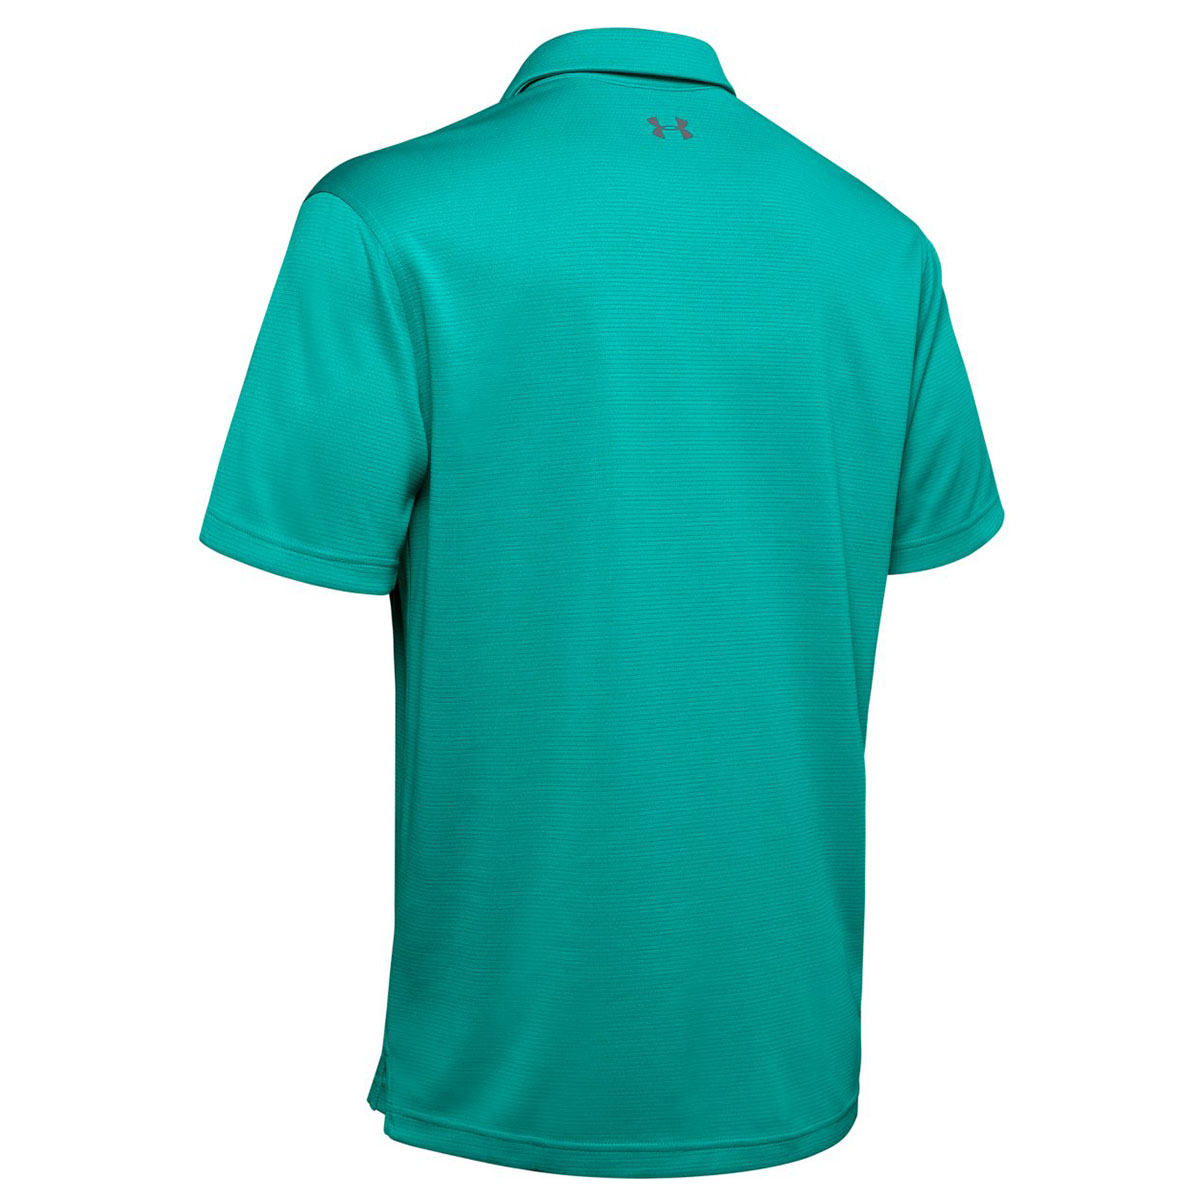 Under-Armour-Mens-Golf-Tech-Wicking-Textured-Soft-Light-Polo-Shirt thumbnail 73